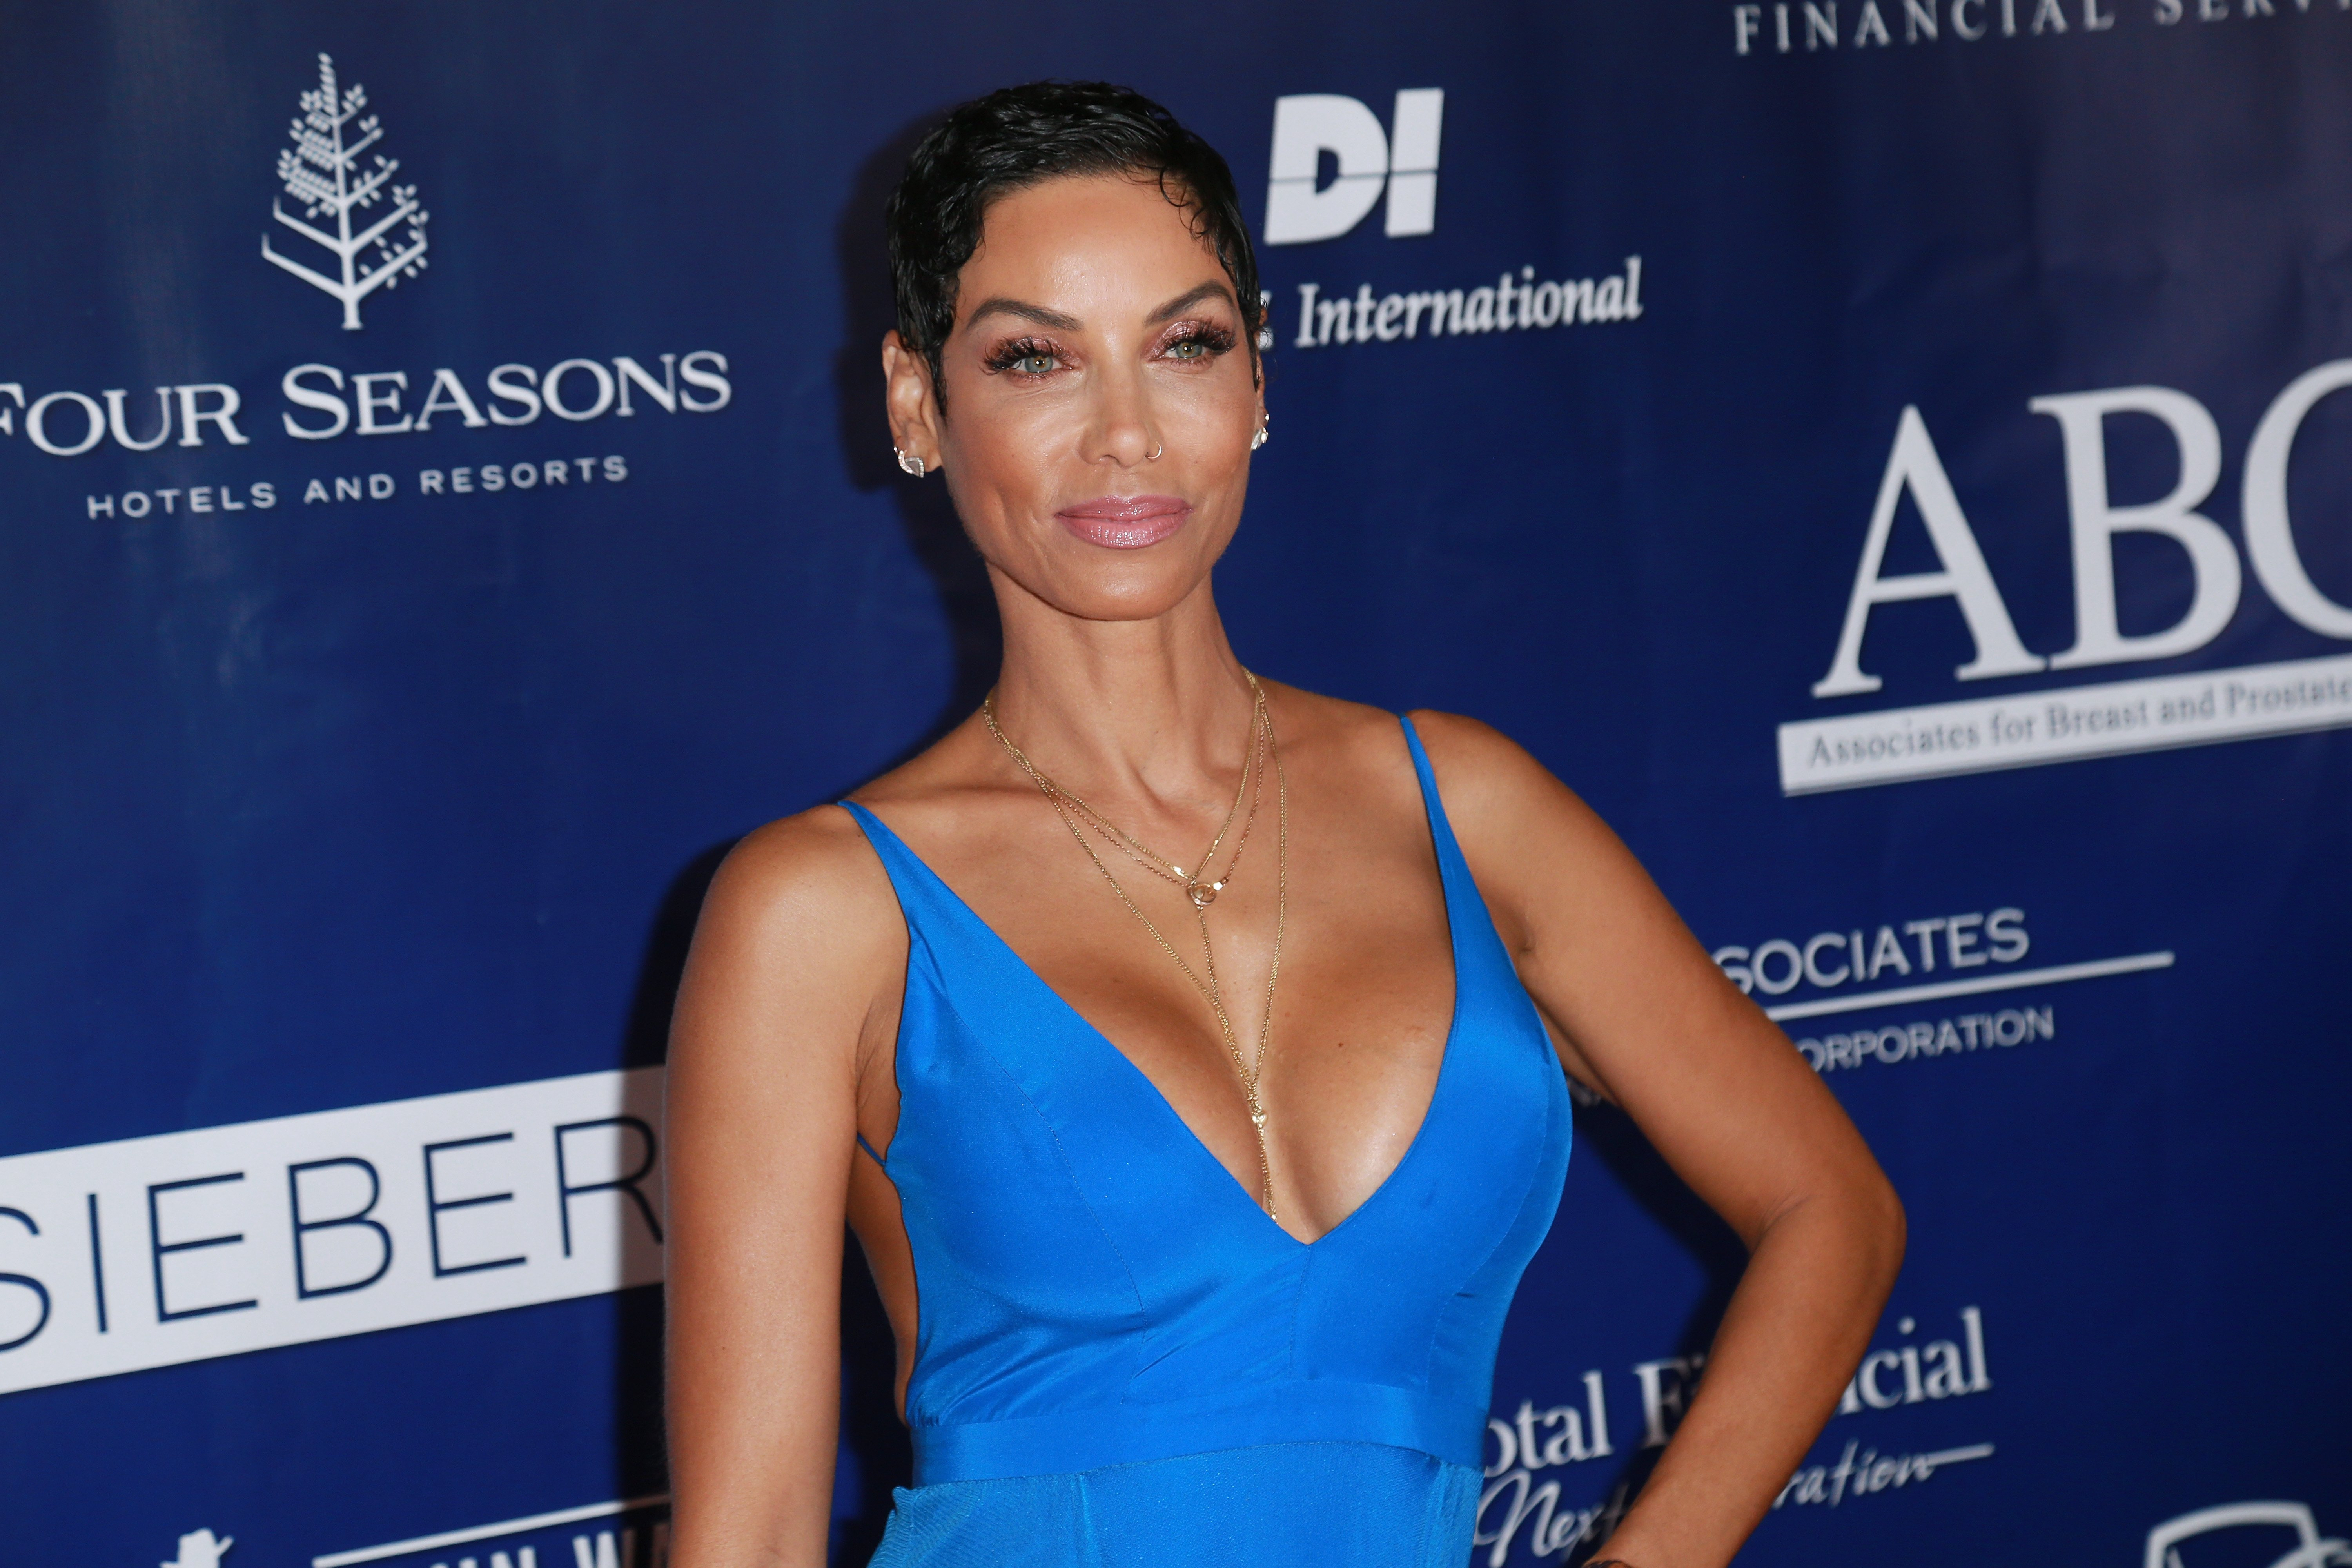 Nicole Murphy at the 28th Annual Talk Of The Town Gala on Nov. 18, 2017 in California | Photo: Getty Images